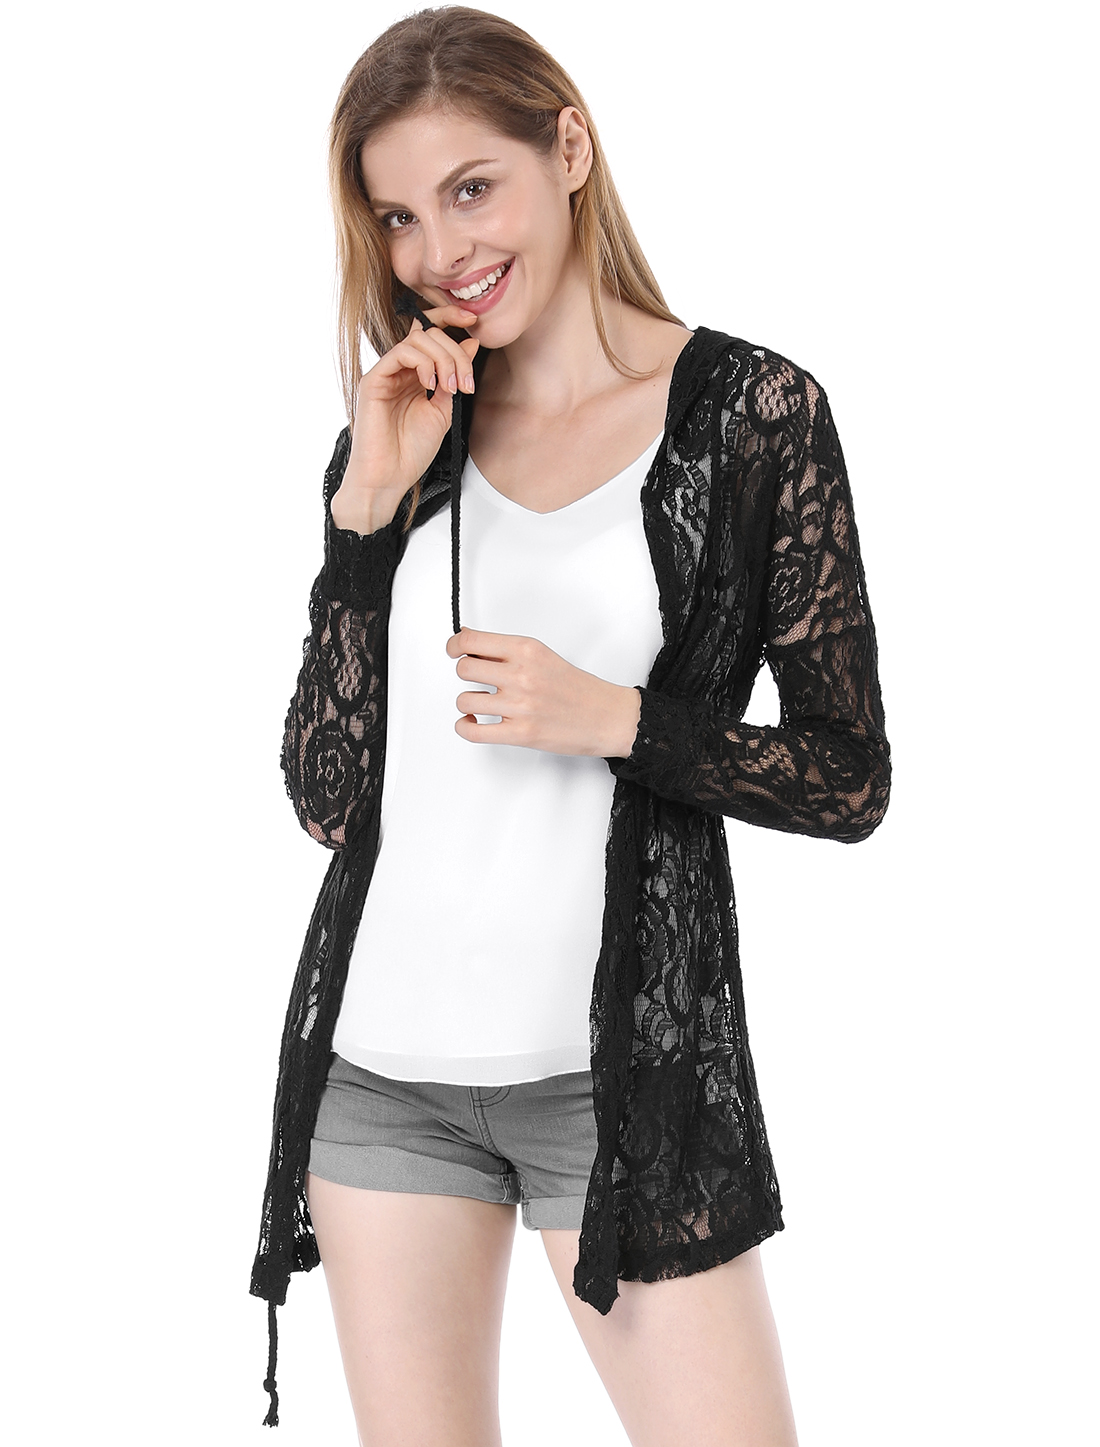 Lady Black Hoodie Long Sleeve Sheer Lace Casual Blazer S